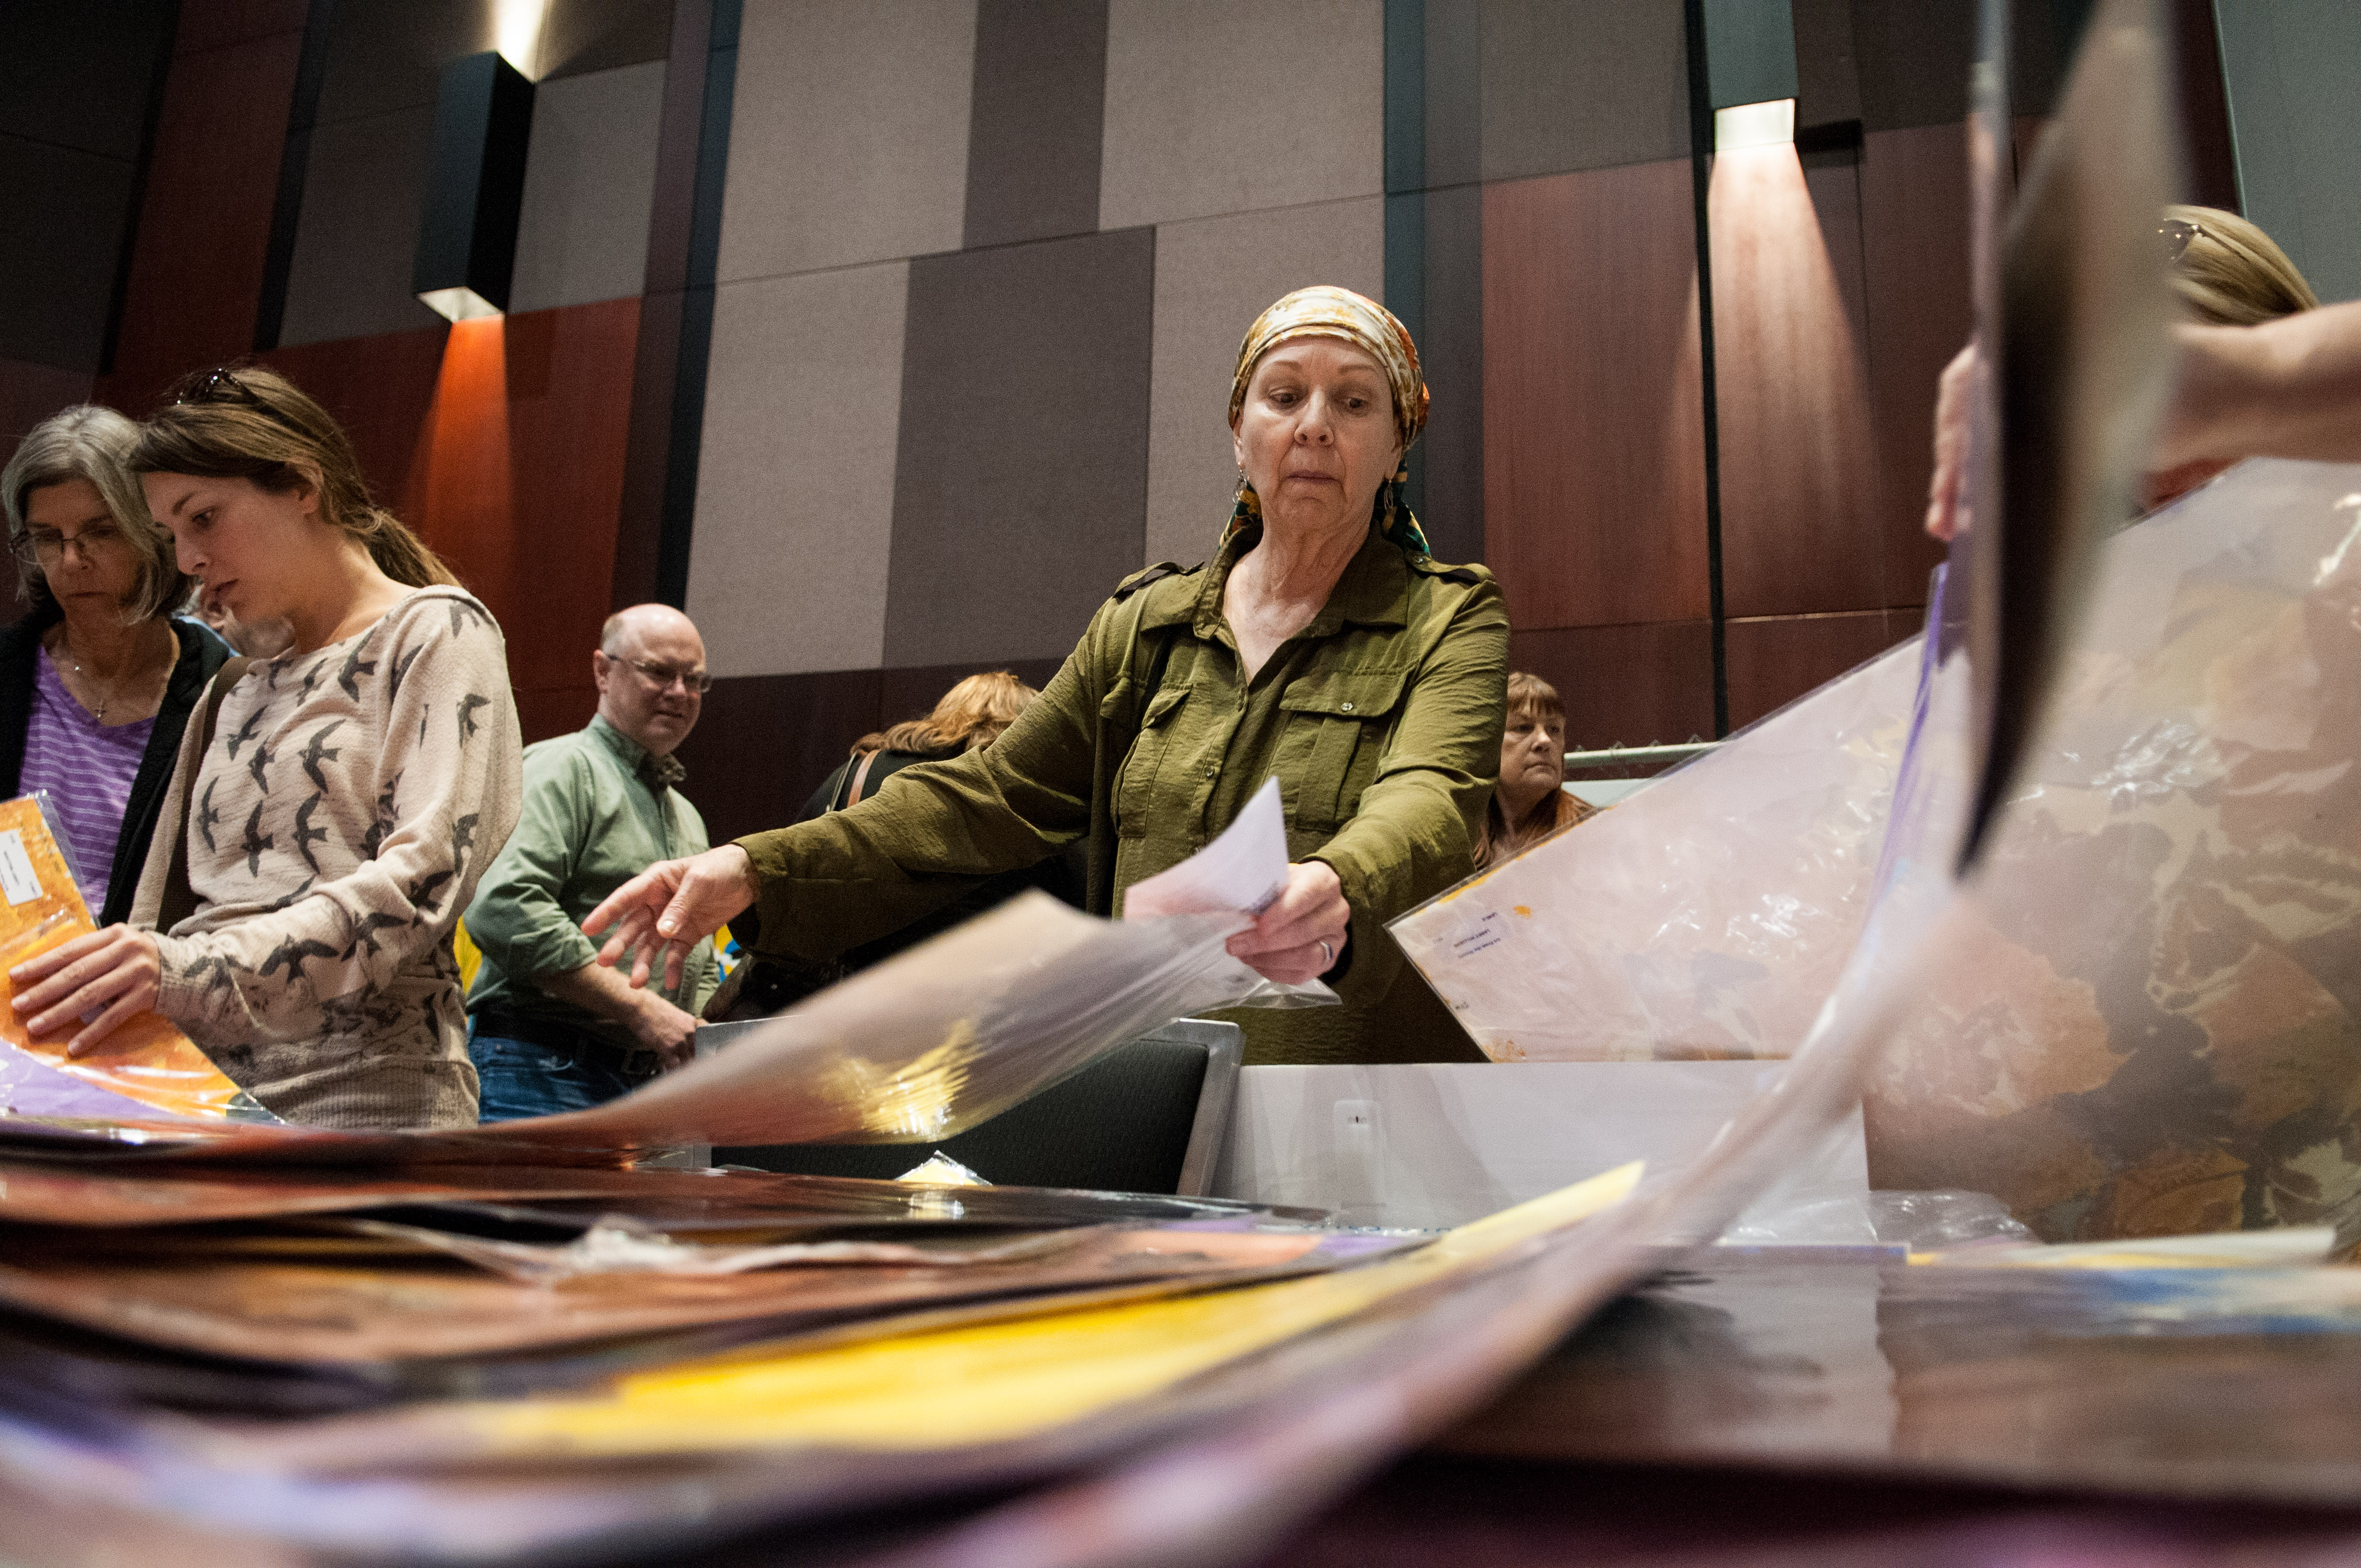 People look through art pieces on the table at the Austin Convention Center. People are looking at the various art pieces for sale at the Austin Convention Center. Photo by Skylar Isdale